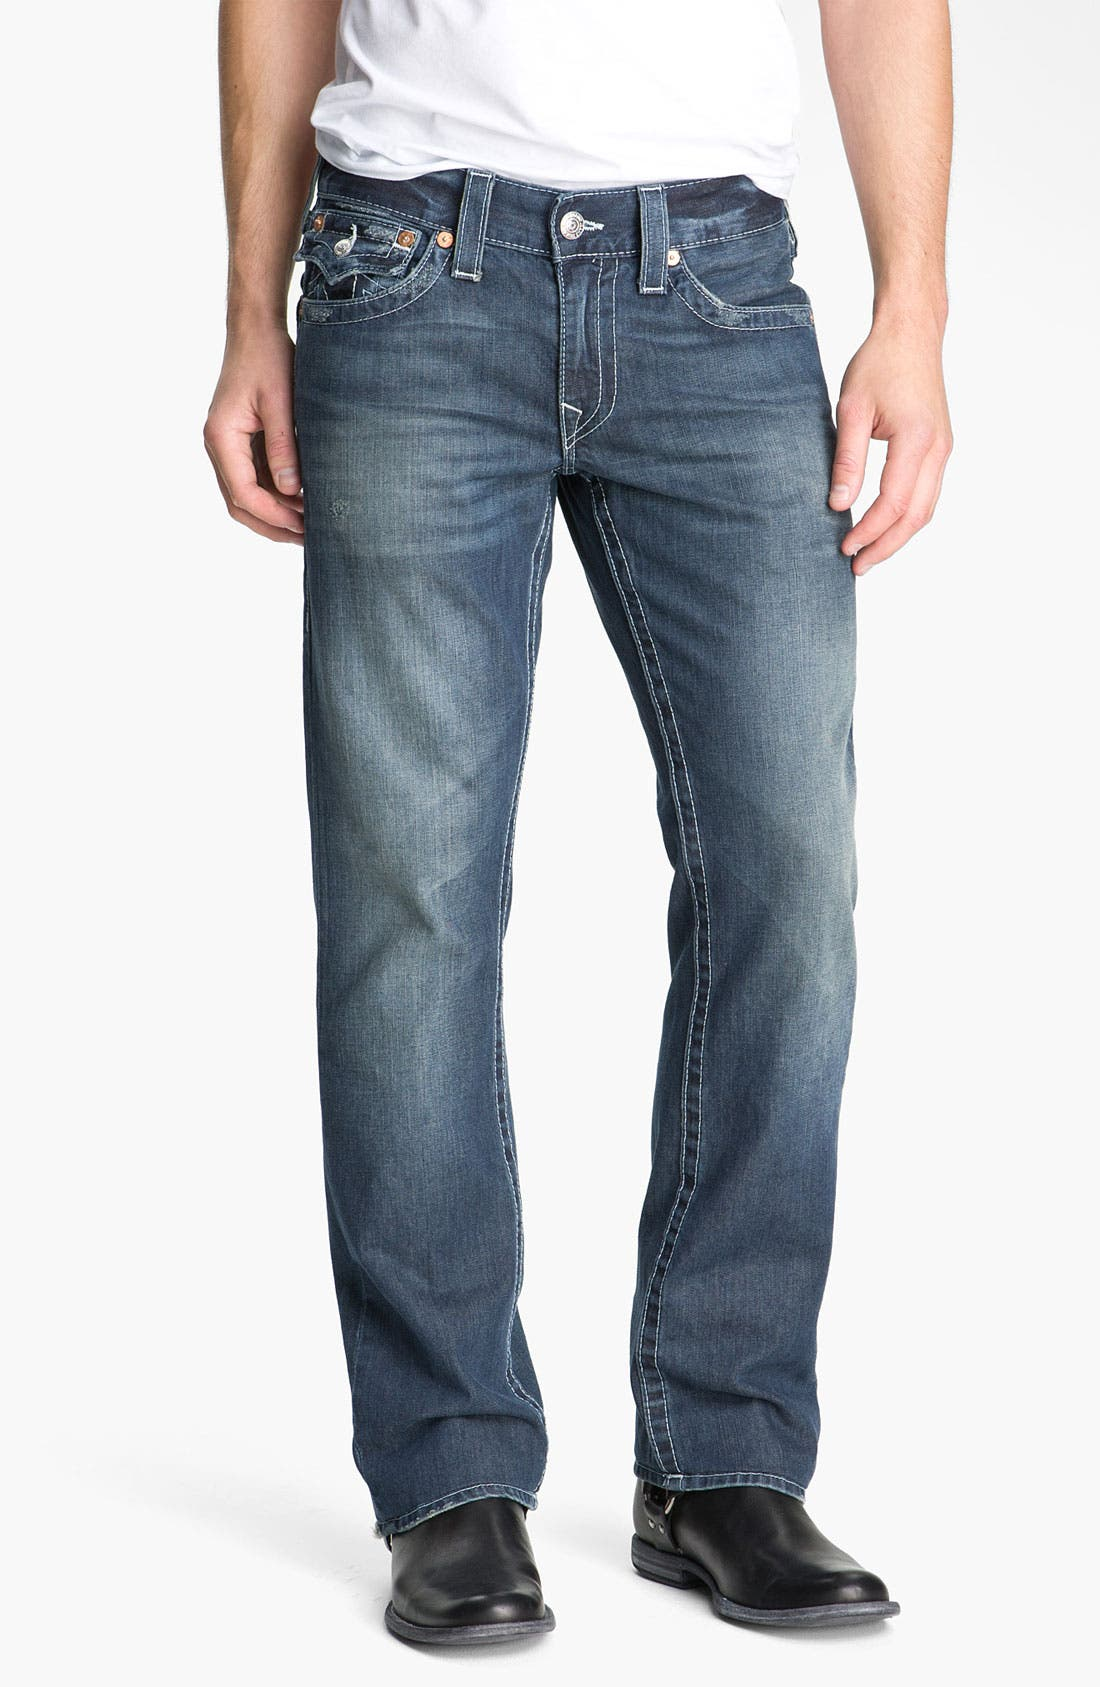 Alternate Image 2  - True Religion Brand Jeans 'Ricky - Natural' Straight Leg Jeans (Surfer Dark)